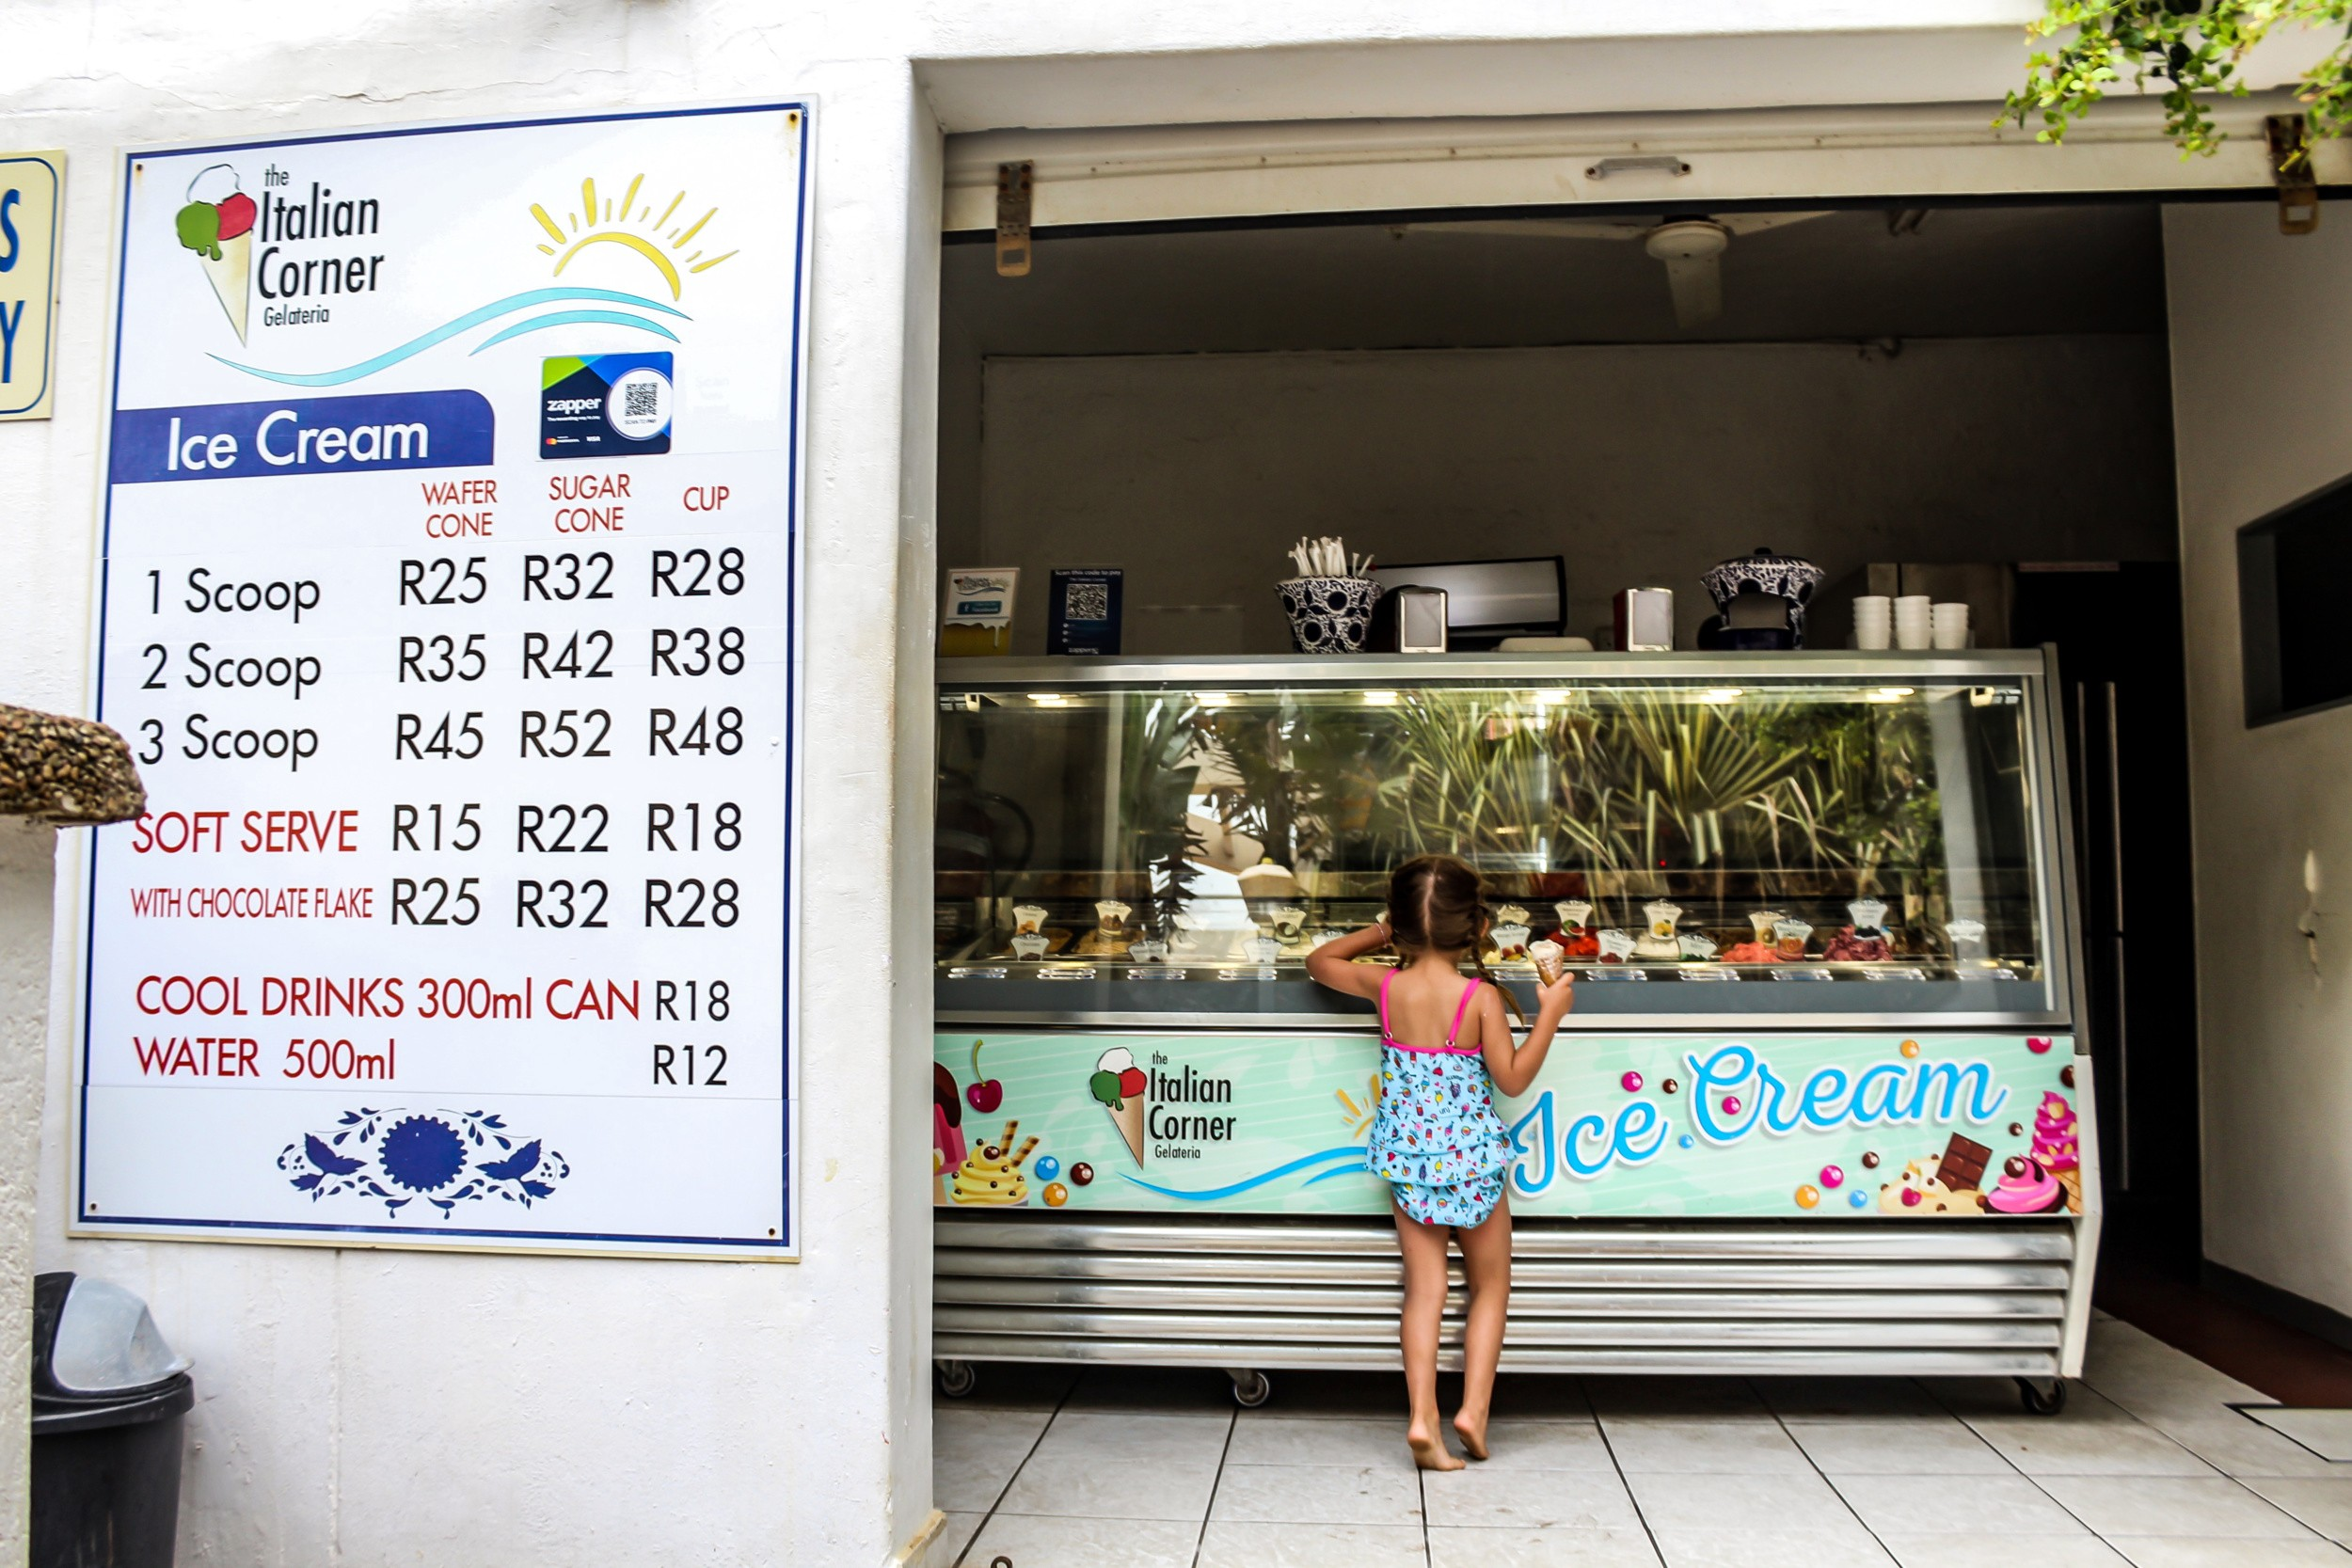 Where-to-eat-icecream-in-Umhlanga 4384